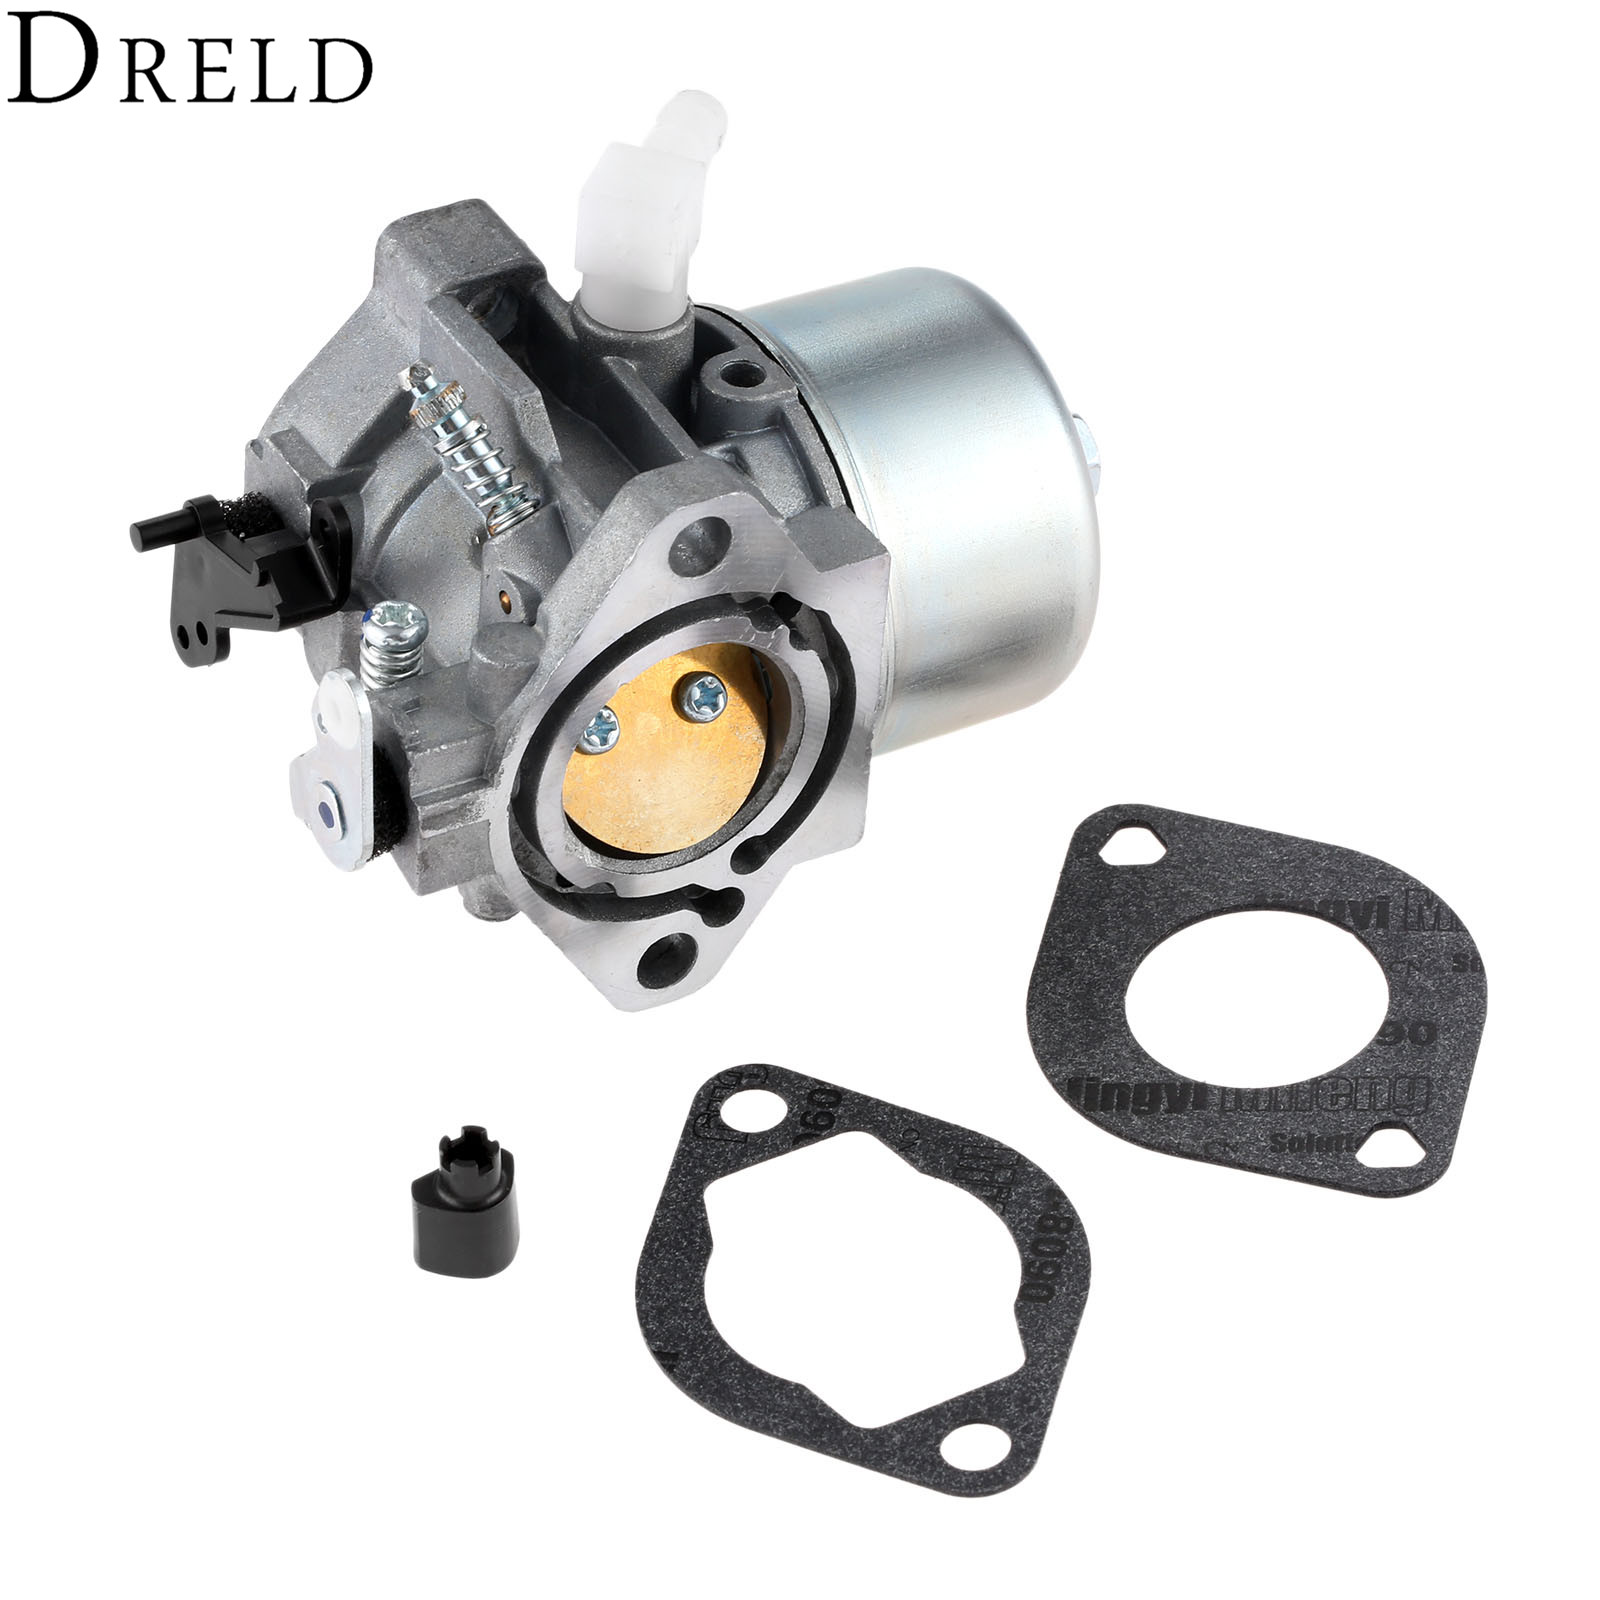 DRELD Replacement Carburetor with 2pcs Carburetor Gasket for Briggs & Stratton 699831 Carb Lawn Mower Garden Power Tools купить недорого в Москве